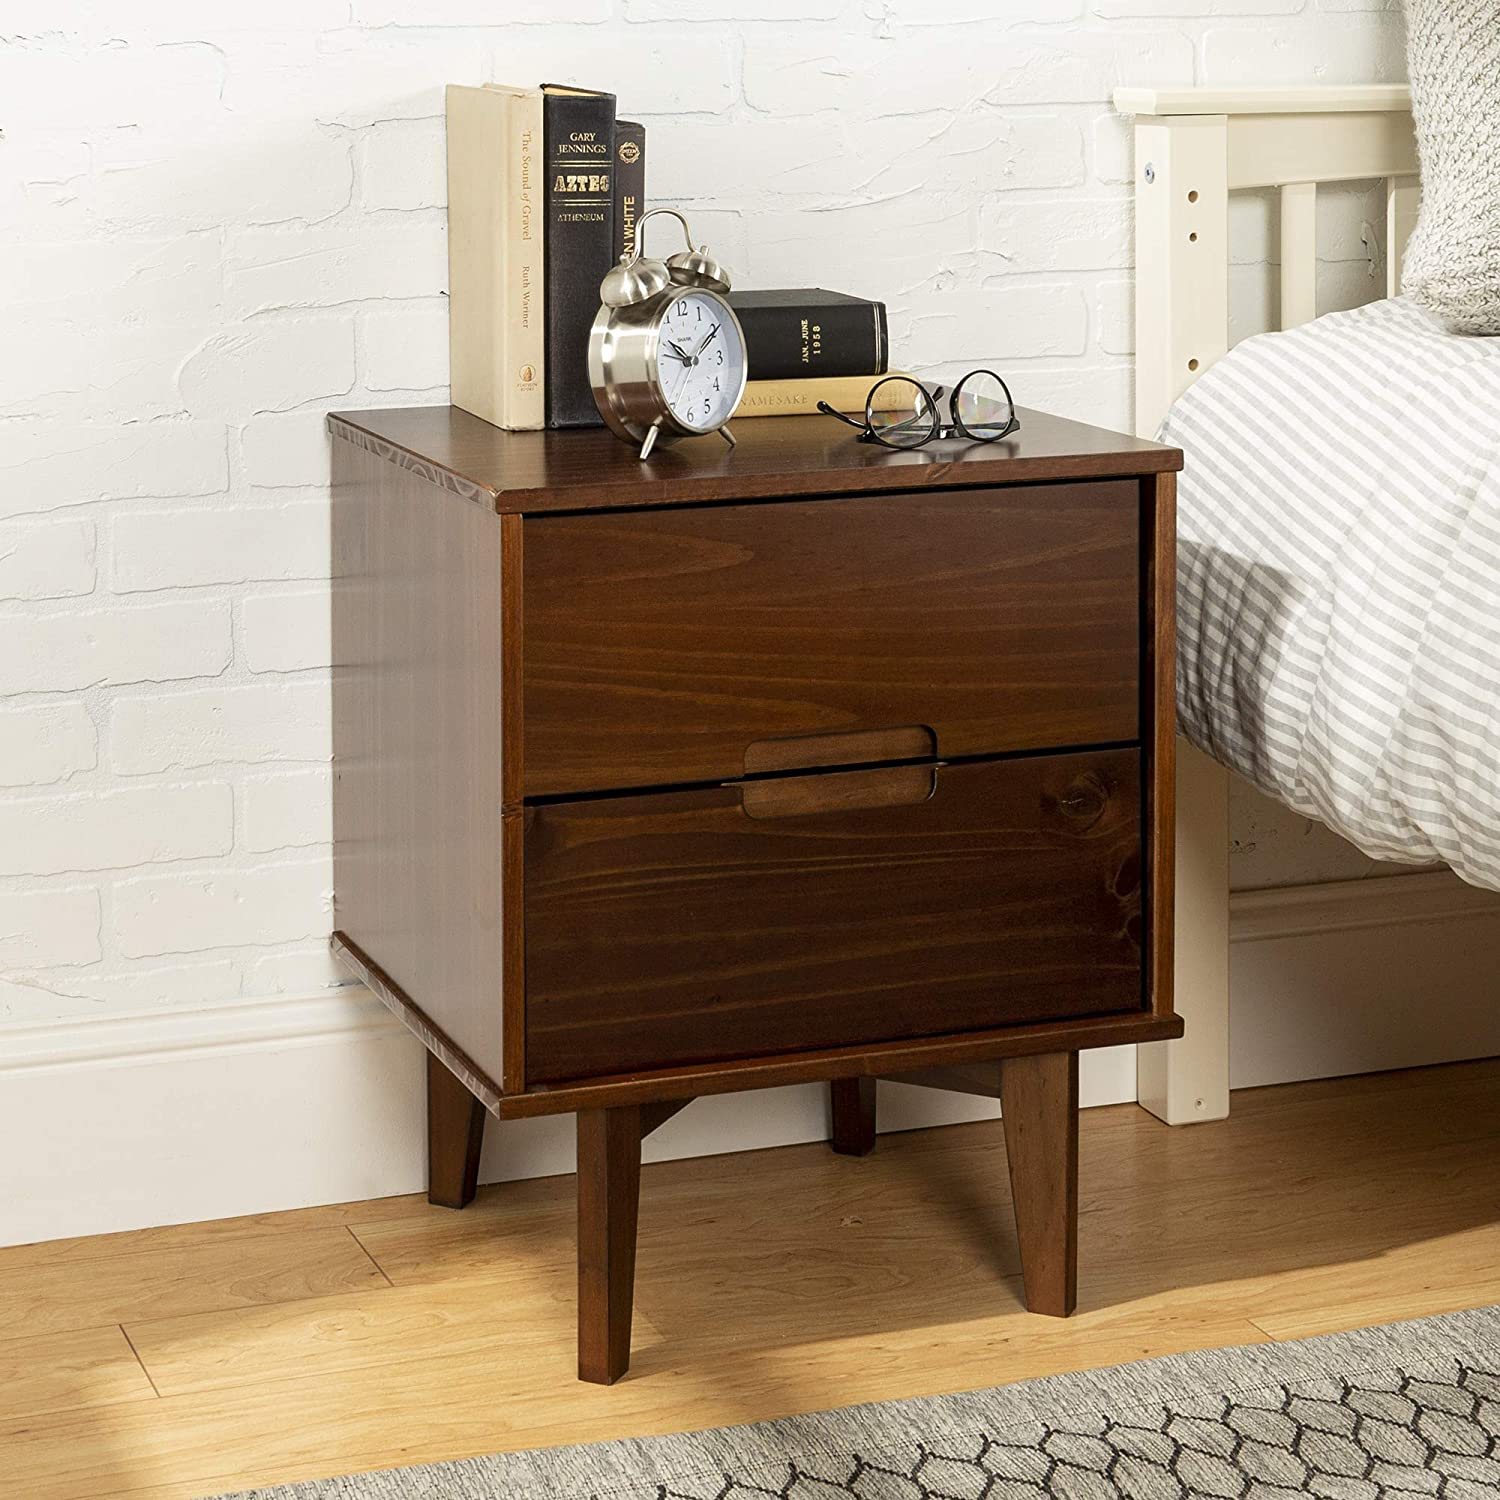 WE Furniture Wood Tall Nightstand for Bedroom Living Room, Walnut, 5 Drawer  Accent Side End Table